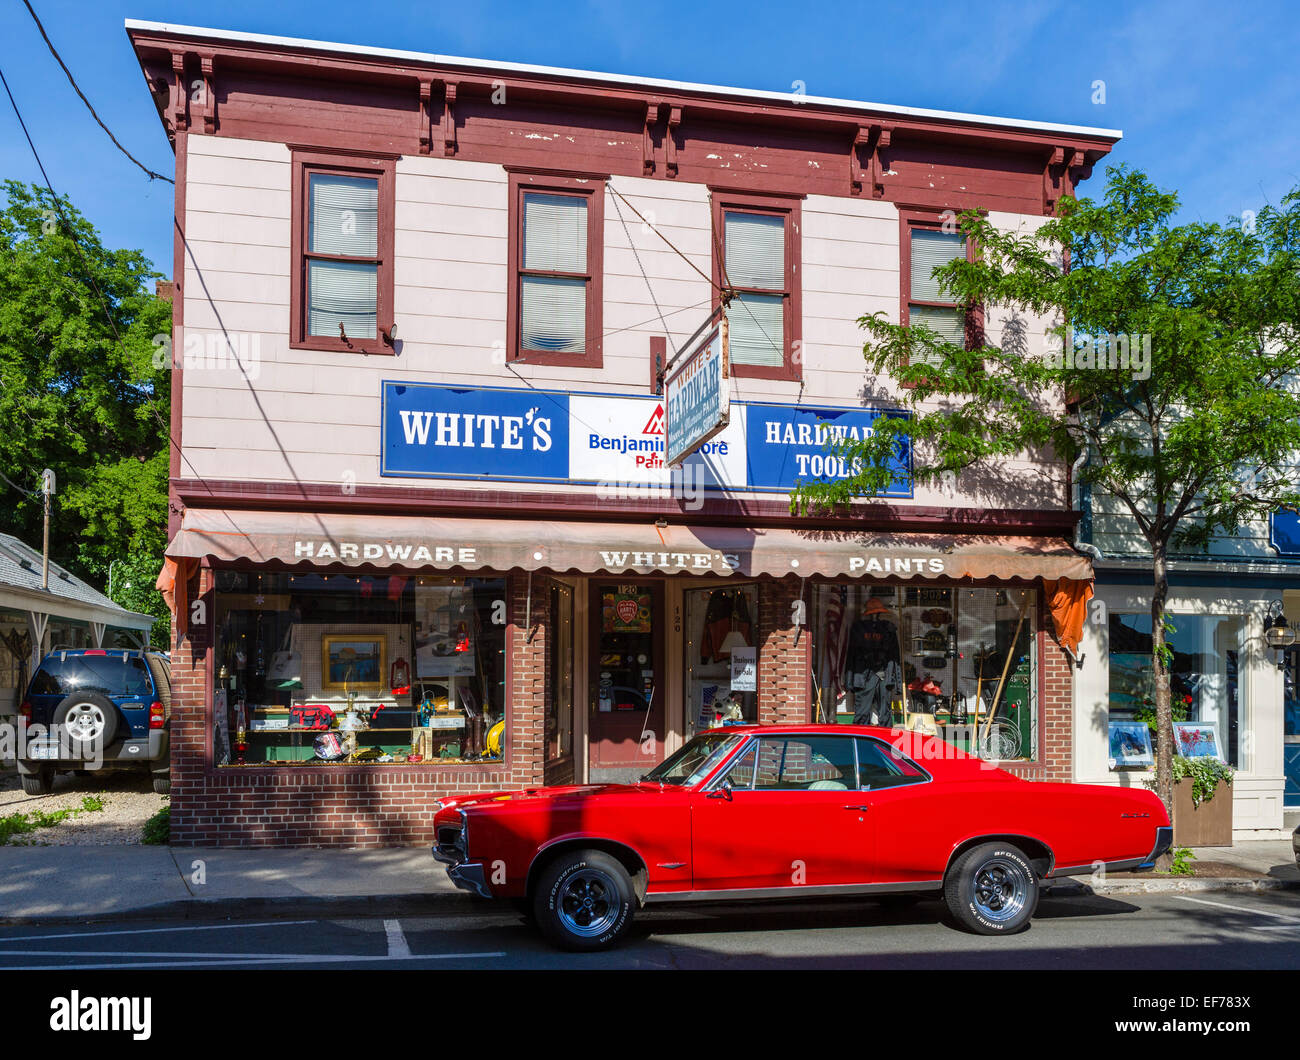 A Pontiac GTO parked outside a hardware store on Main Street in the village of Greenport, Suffolk County, Long Island, - Stock Image